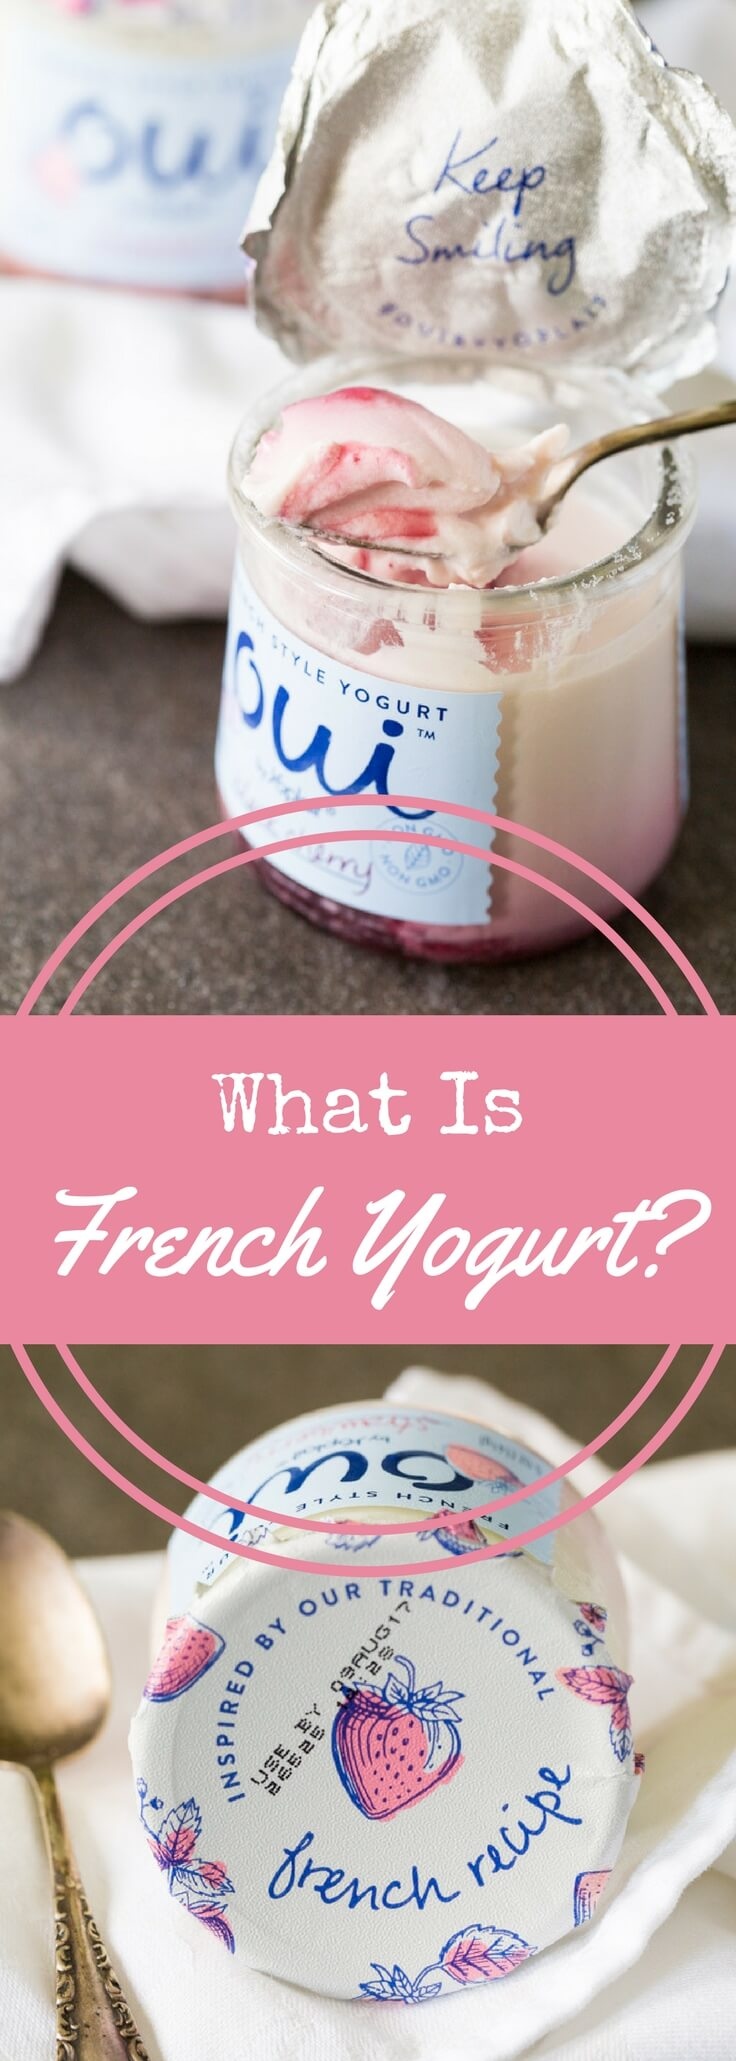 French yogurt is cultured in its own glass pot, creating a uniquely thick, creamy, and custard-like consistency.  Get the details and find out where to buy.